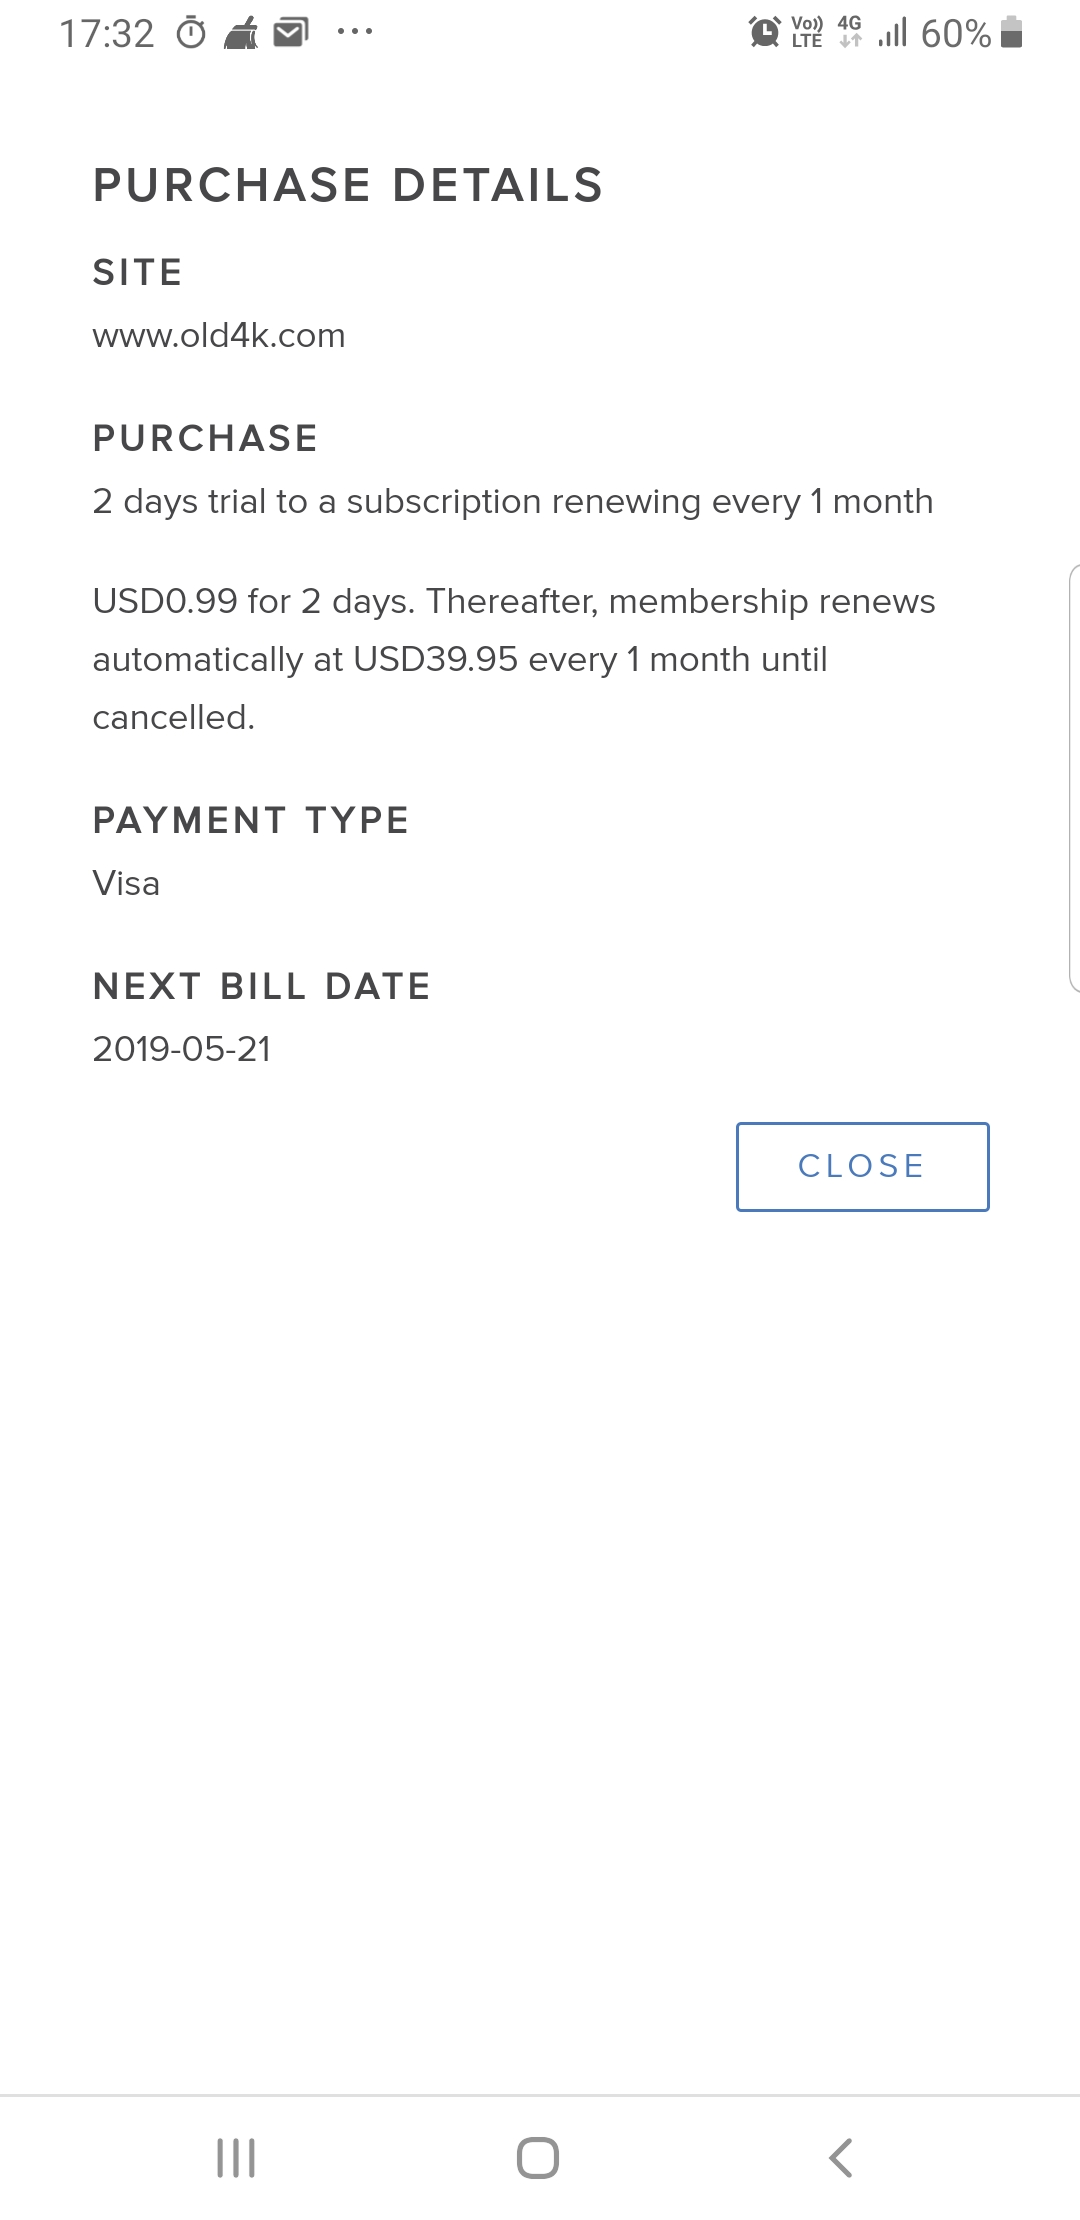 Epoch.com charges